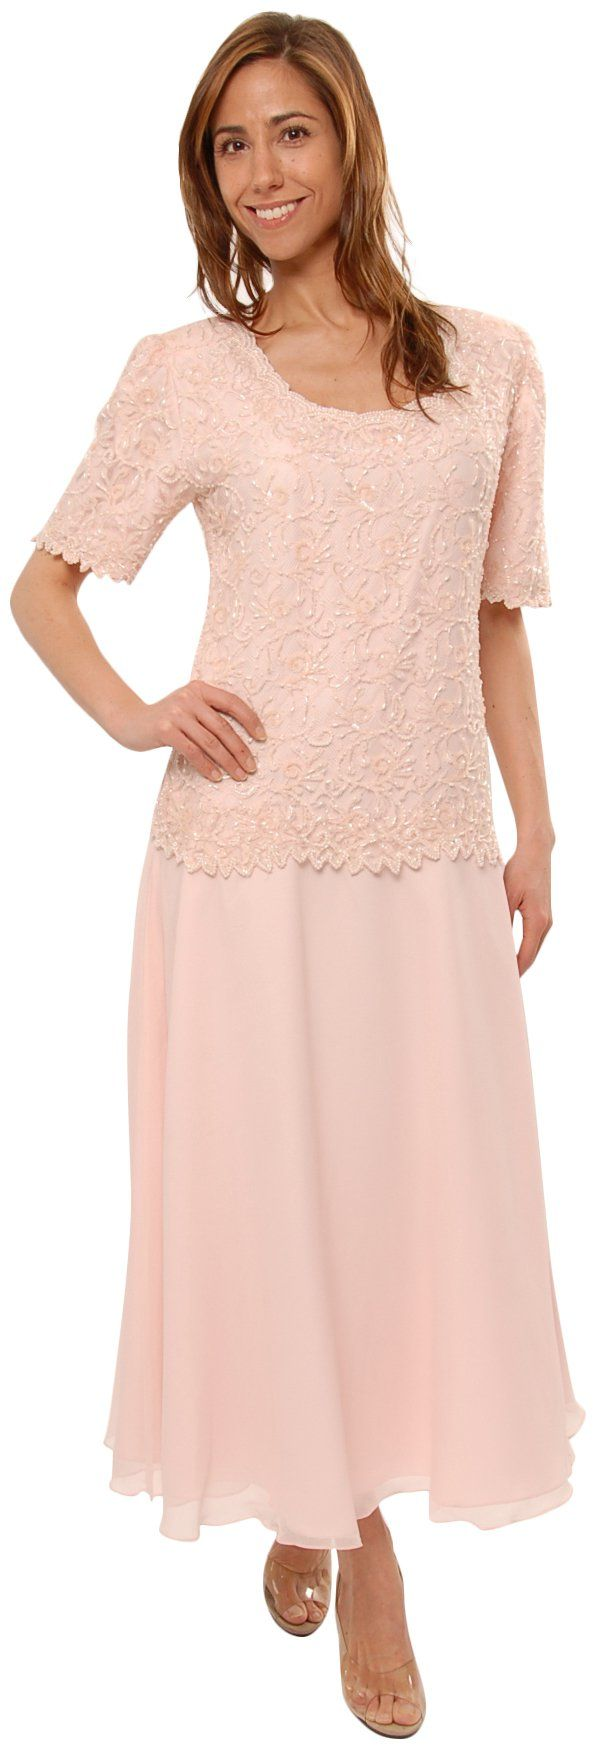 Mother of the Bride Great Tea Length Dress in Pink | Amazon.com ...